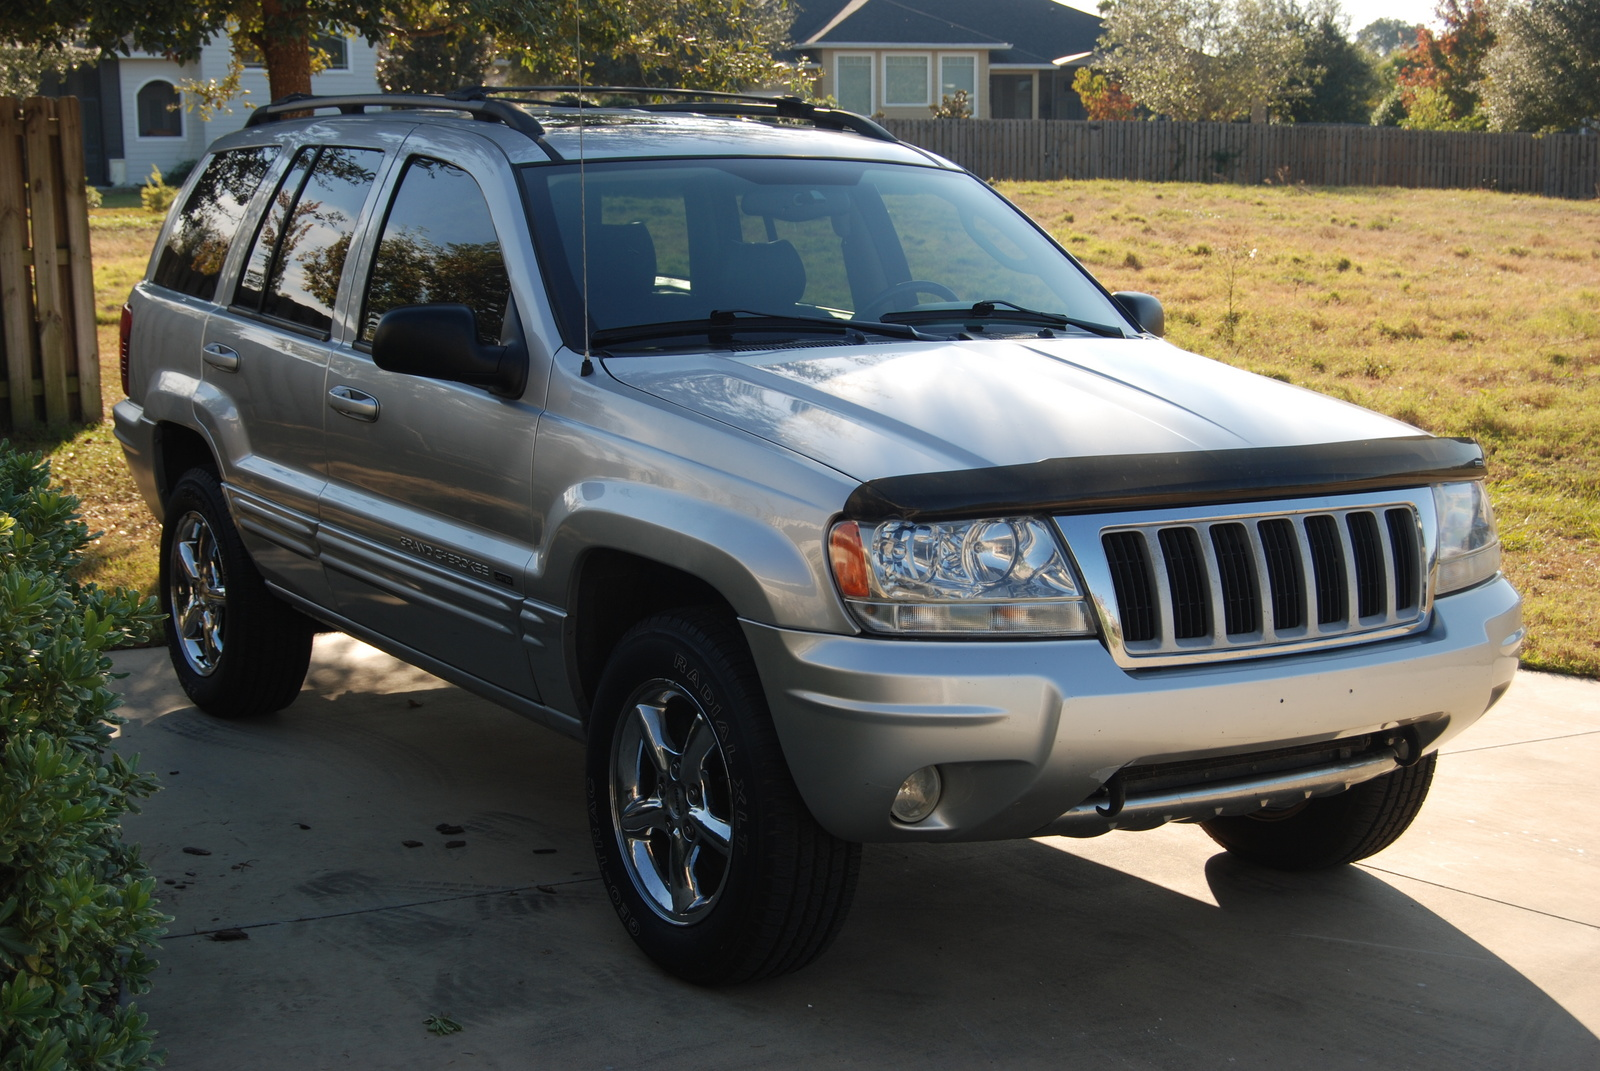 2004 jeep cherokee reviews picture of 2004 jeep grand cherokee limited. Cars Review. Best American Auto & Cars Review